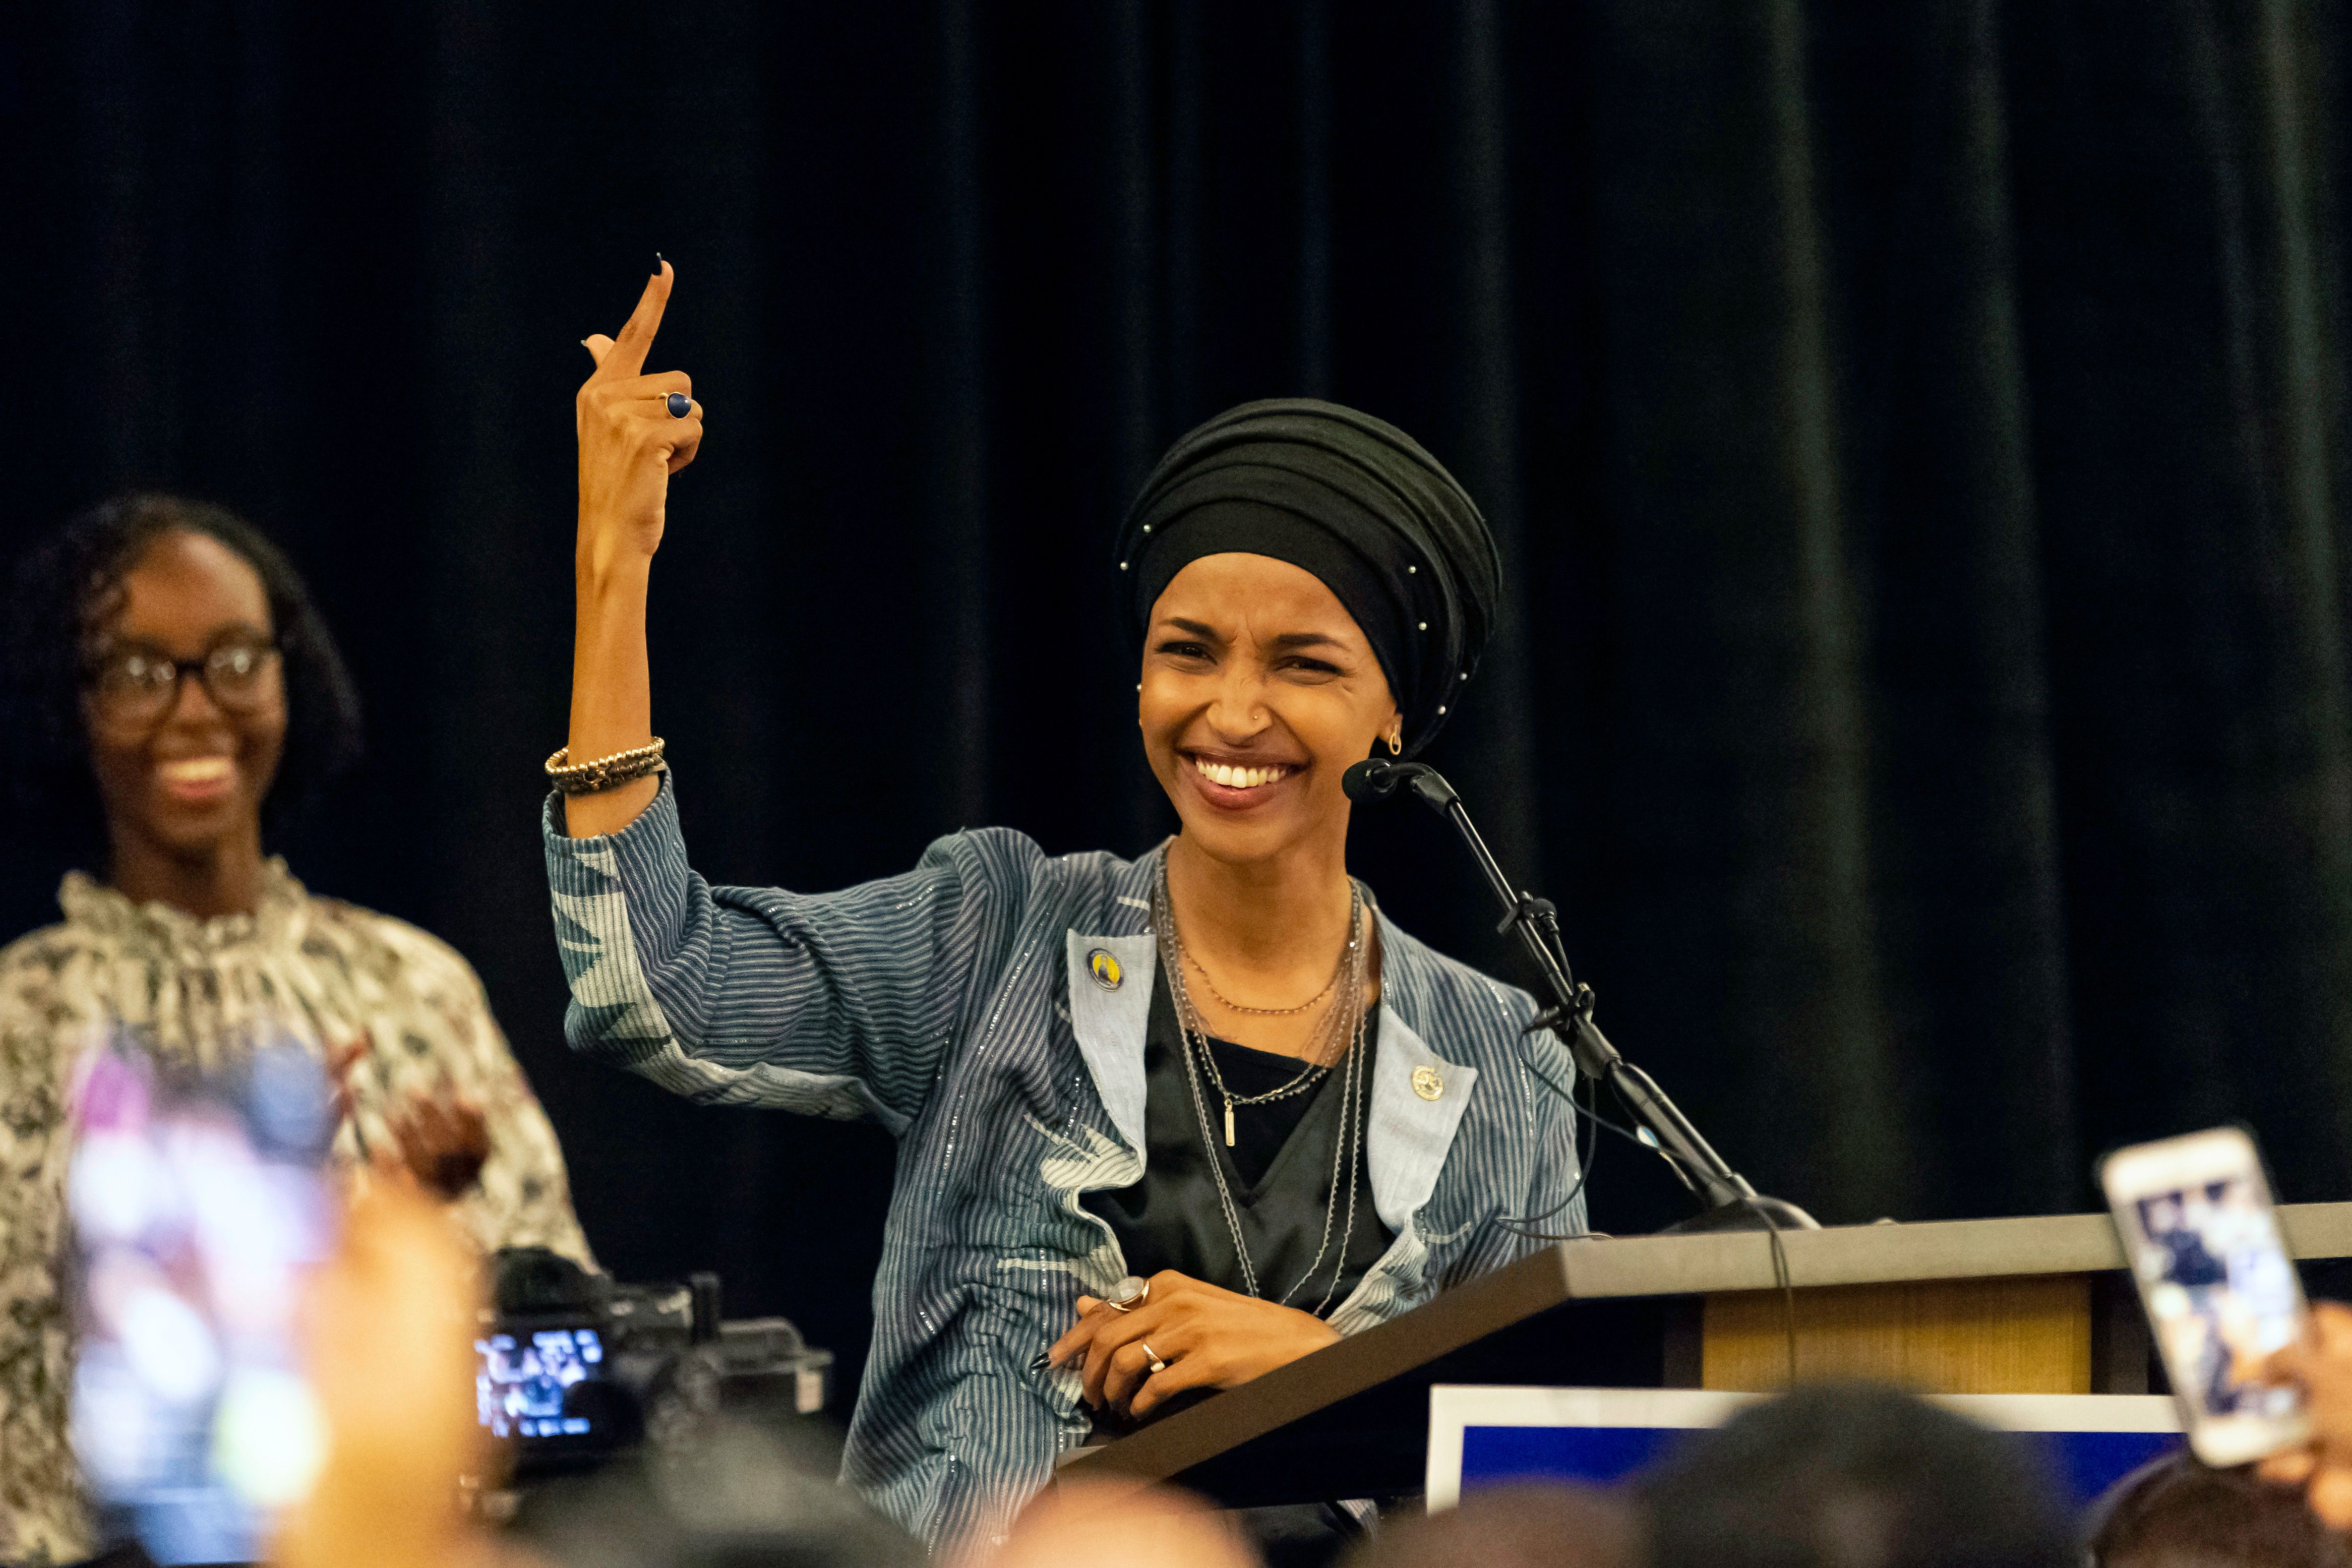 Ilhan Omar, newly elected to the U.S. House of Representatives on the Democratic ticket, speaks to a group of supporters in Minneapolis, Minnesota on November 6, 2018. - US voters elected two Muslim women, both Democrats, to Congress on November 6, 2018, marking a historic first in a country where anti-Muslim rhetoric has been on the rise, American networks reported. Ilhan Omar, a Somali refugee, won a House seat in a heavily-Democratic district in the Midwestern state of Minnesota, where she will succeed Keith Ellison, himself the first Muslim elected to Congress. (Photo by Kerem Yucel / AFP)